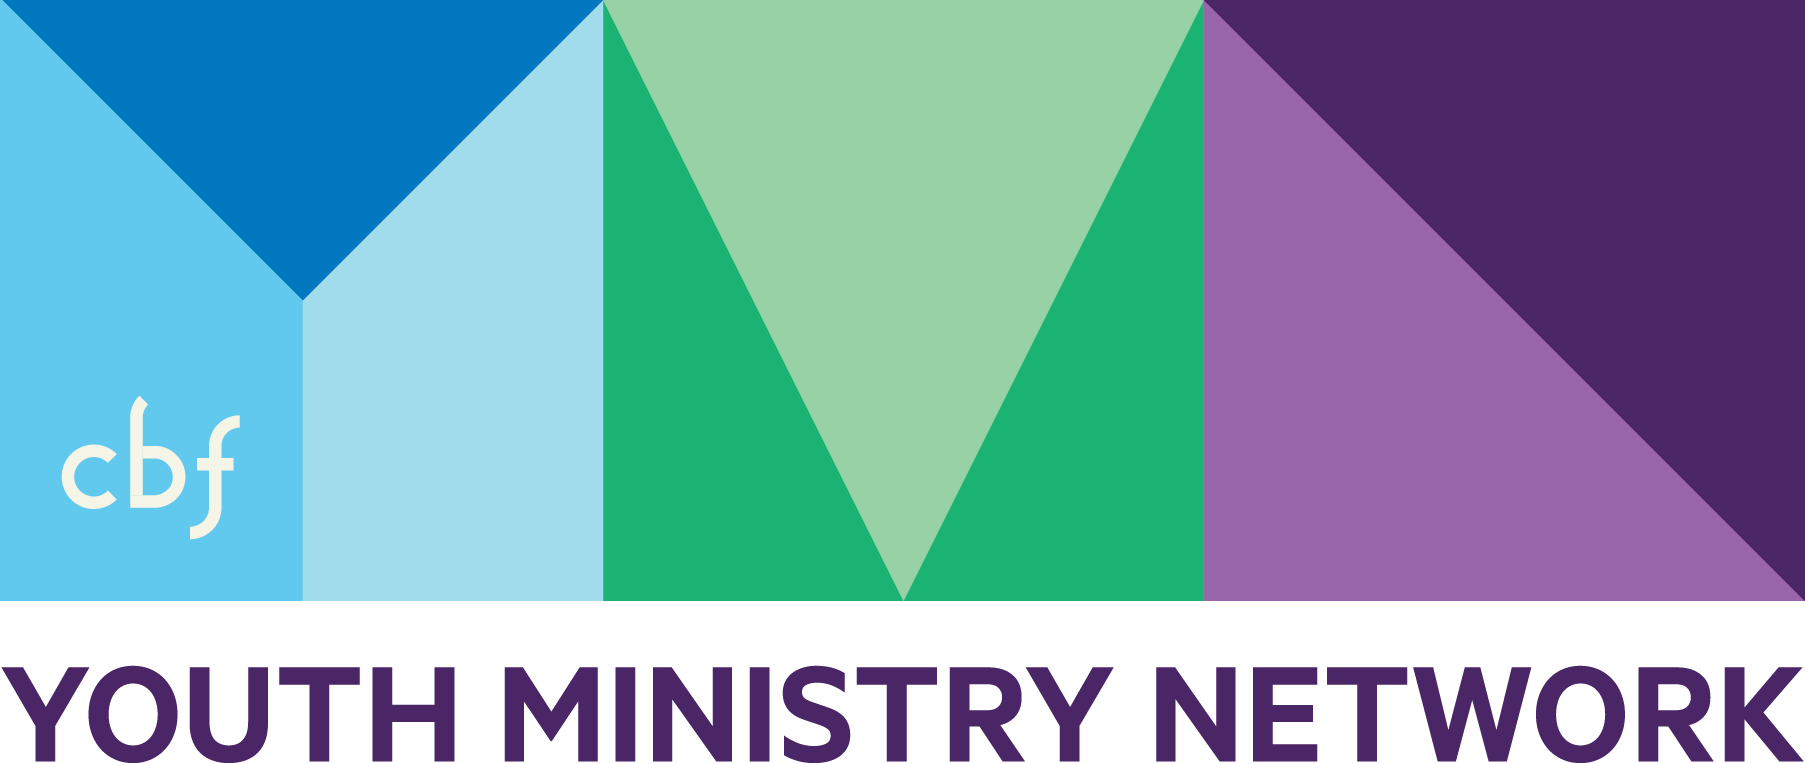 YMN official logo.png